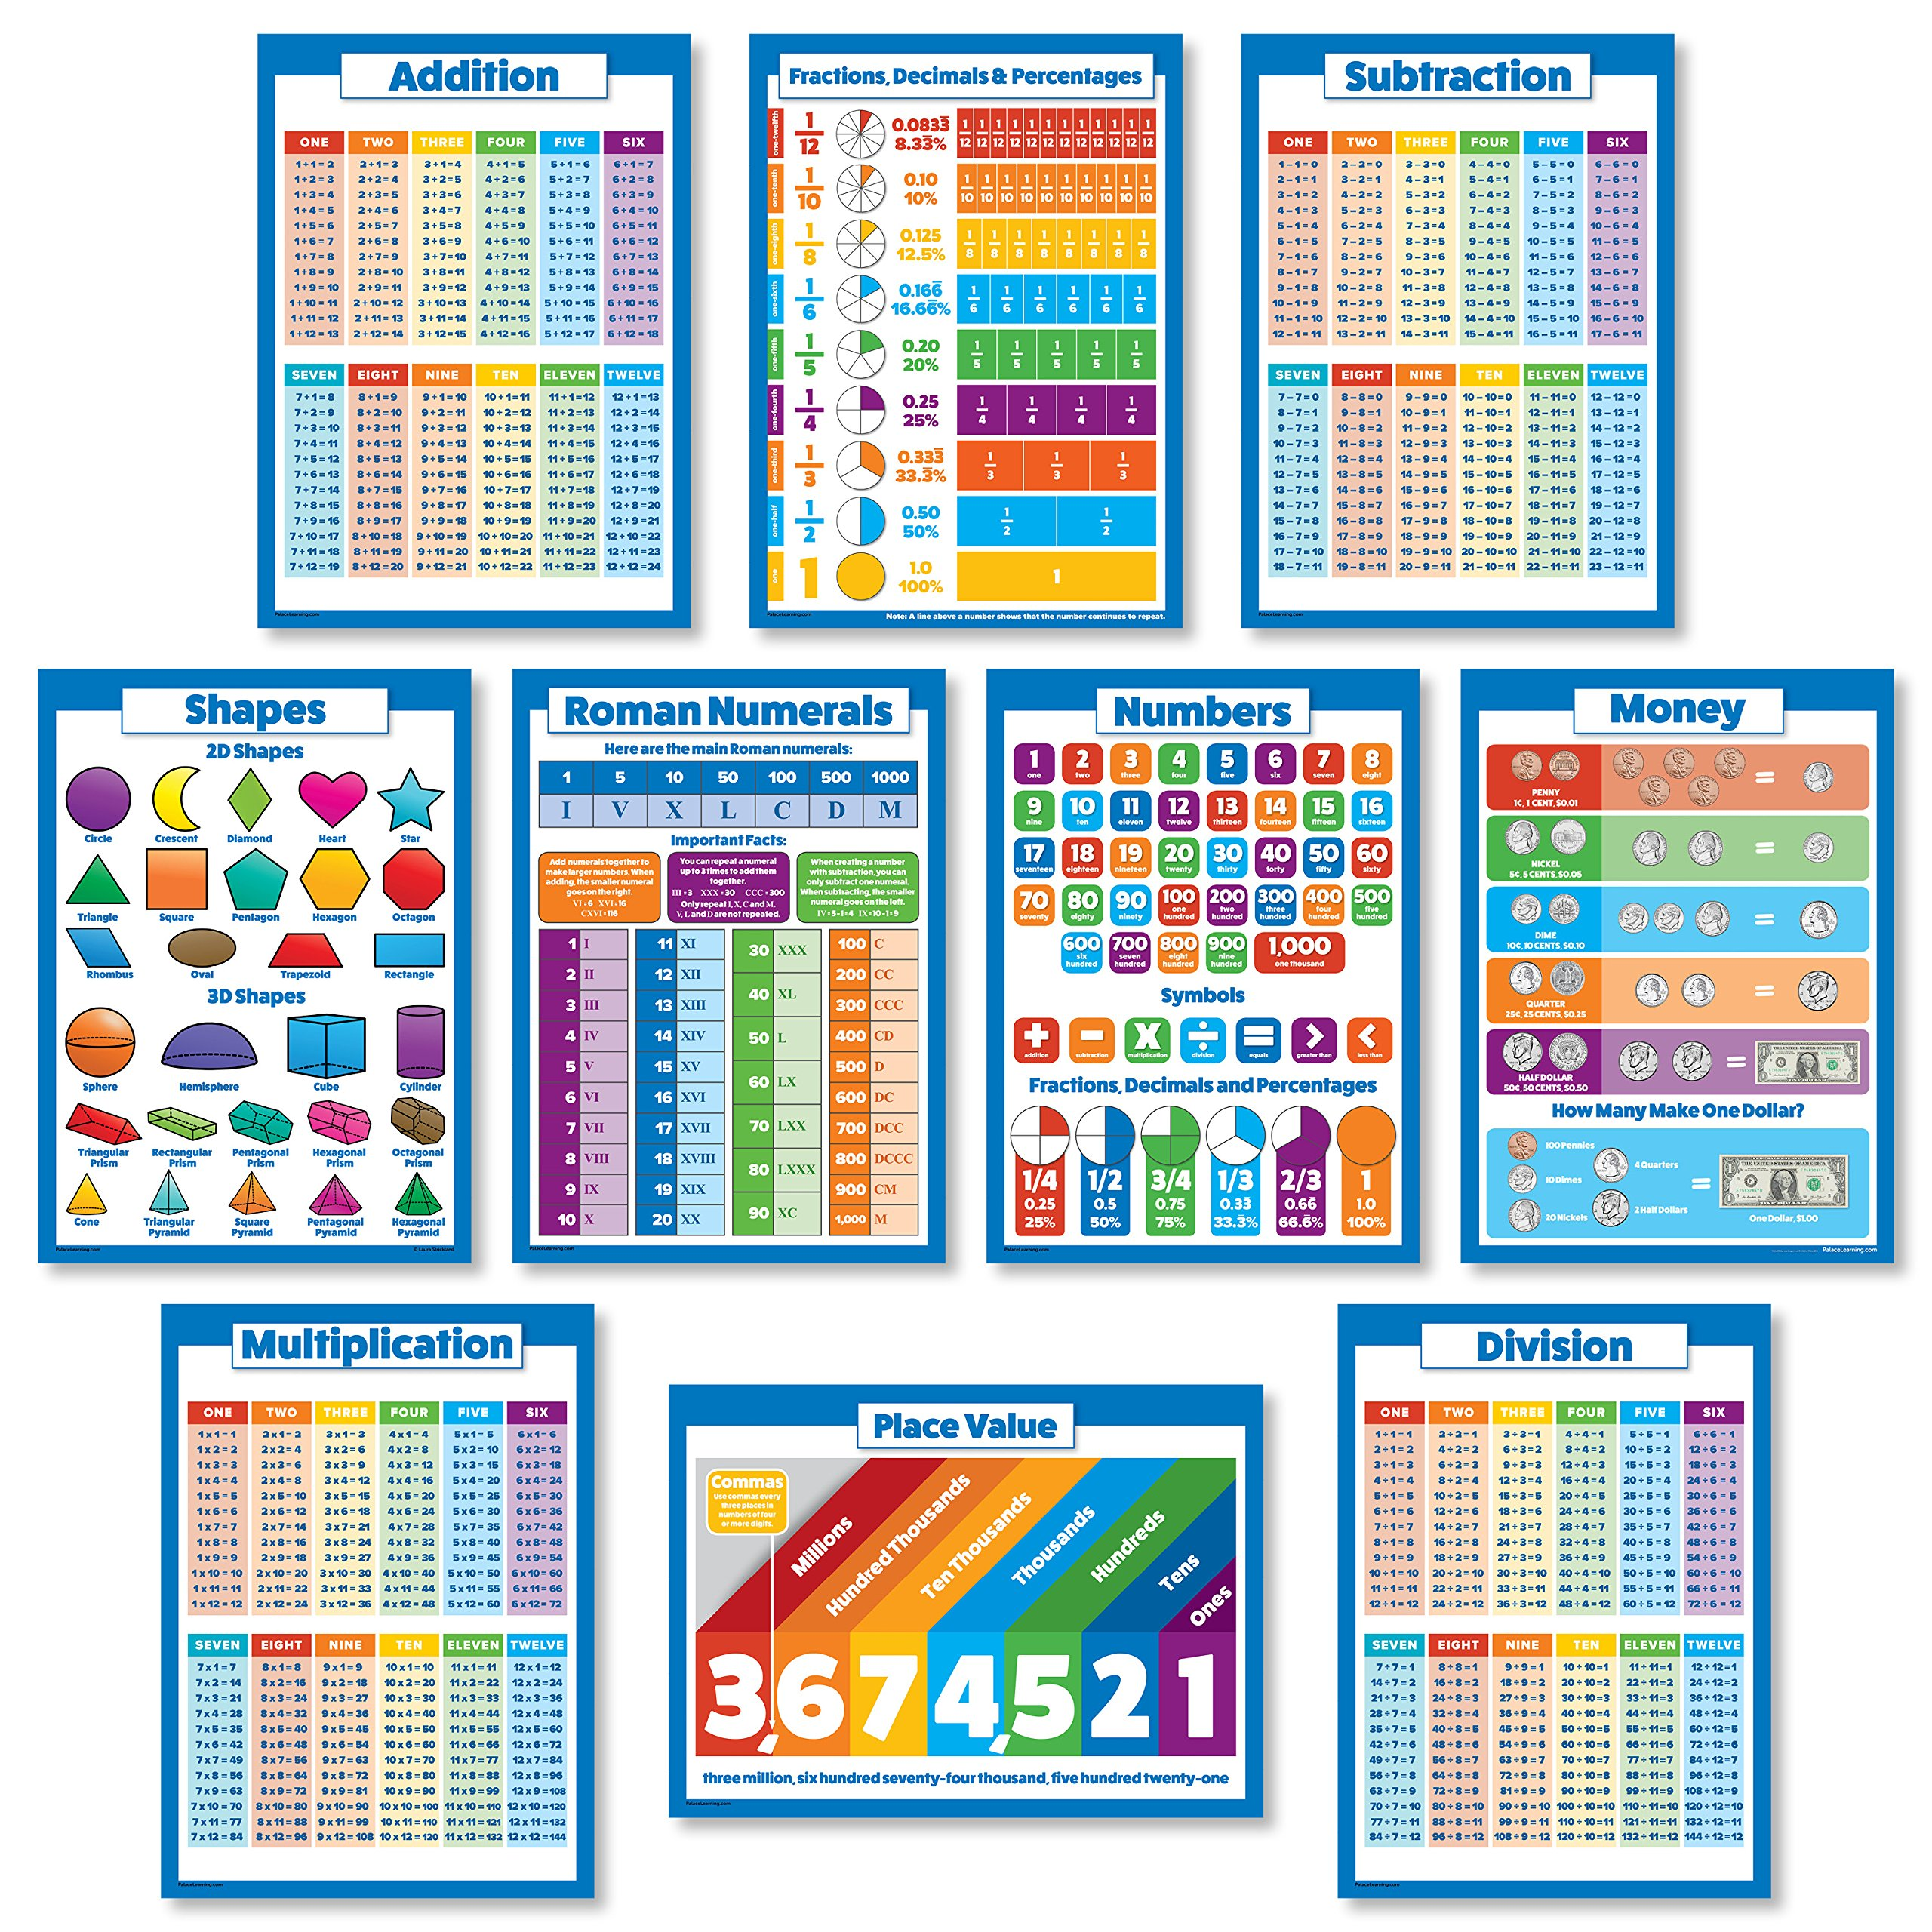 10 Large Laminated Math Posters for Kids - Multiplication Chart, Division, Addition, Subtraction, Numbers 1-100 +, 3D Shapes, Fractions, Decimals, Percentages, Place Value, Money - 18''x 24'' by Palace Learning